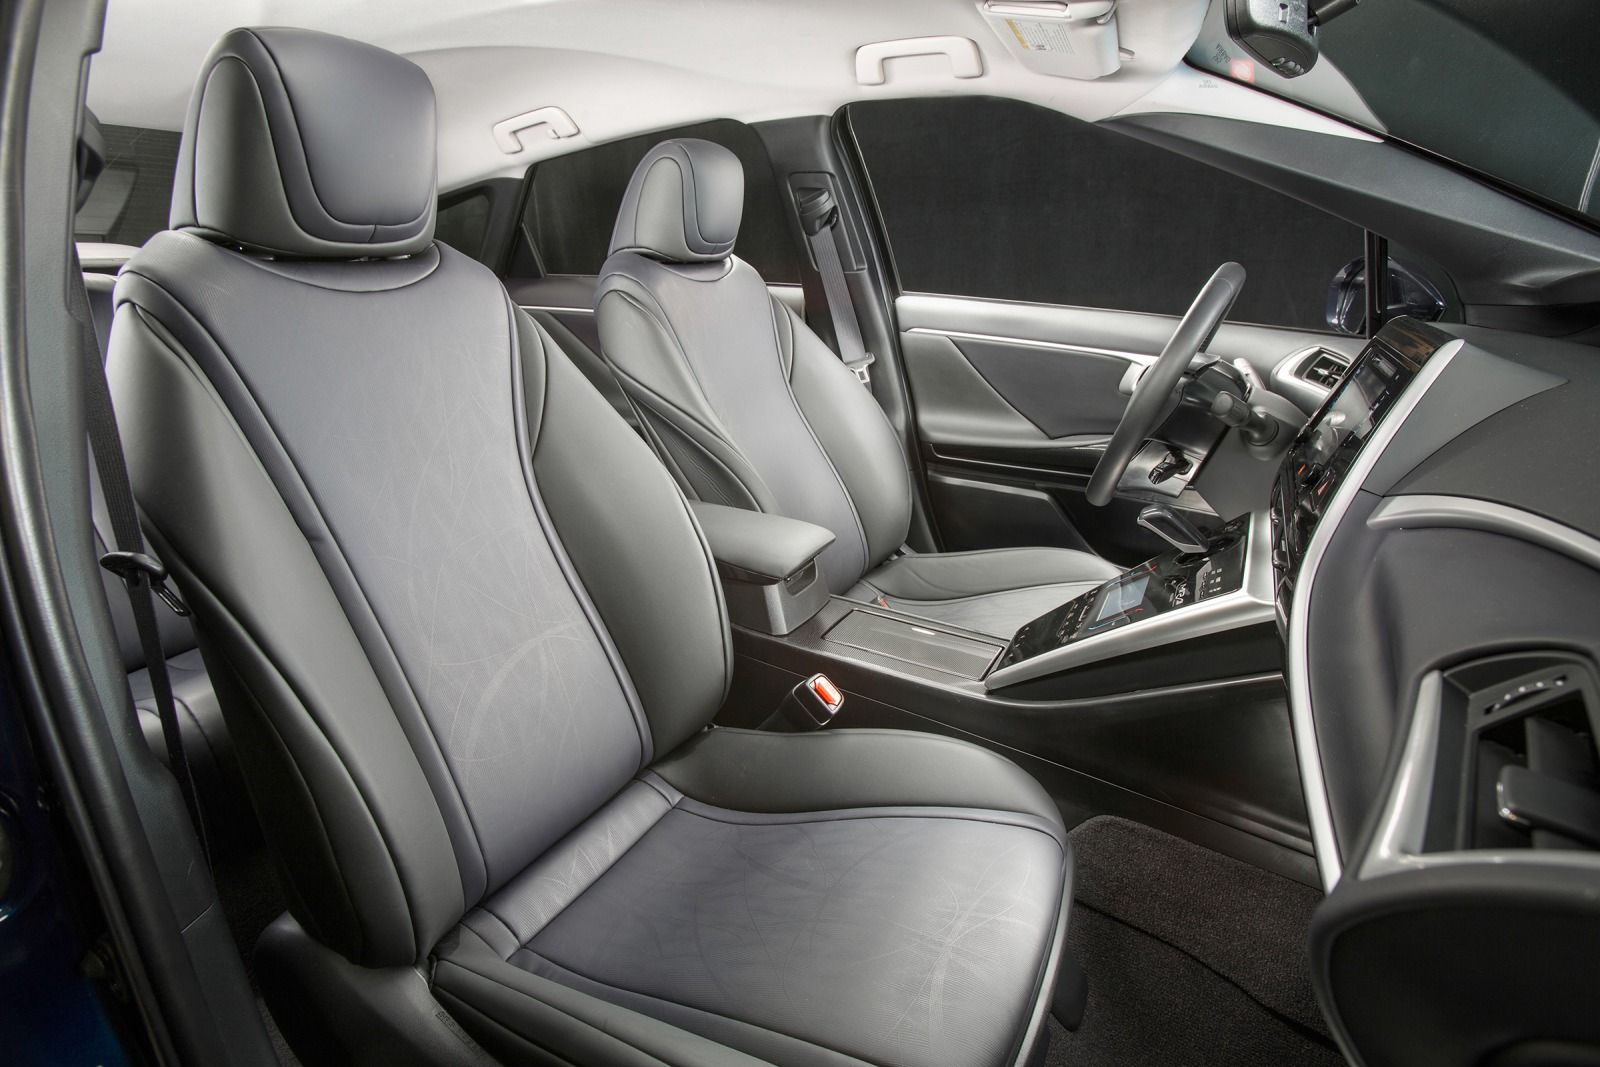 2016 Toyota Mirai Front Interior Seats (View 13 of 18)